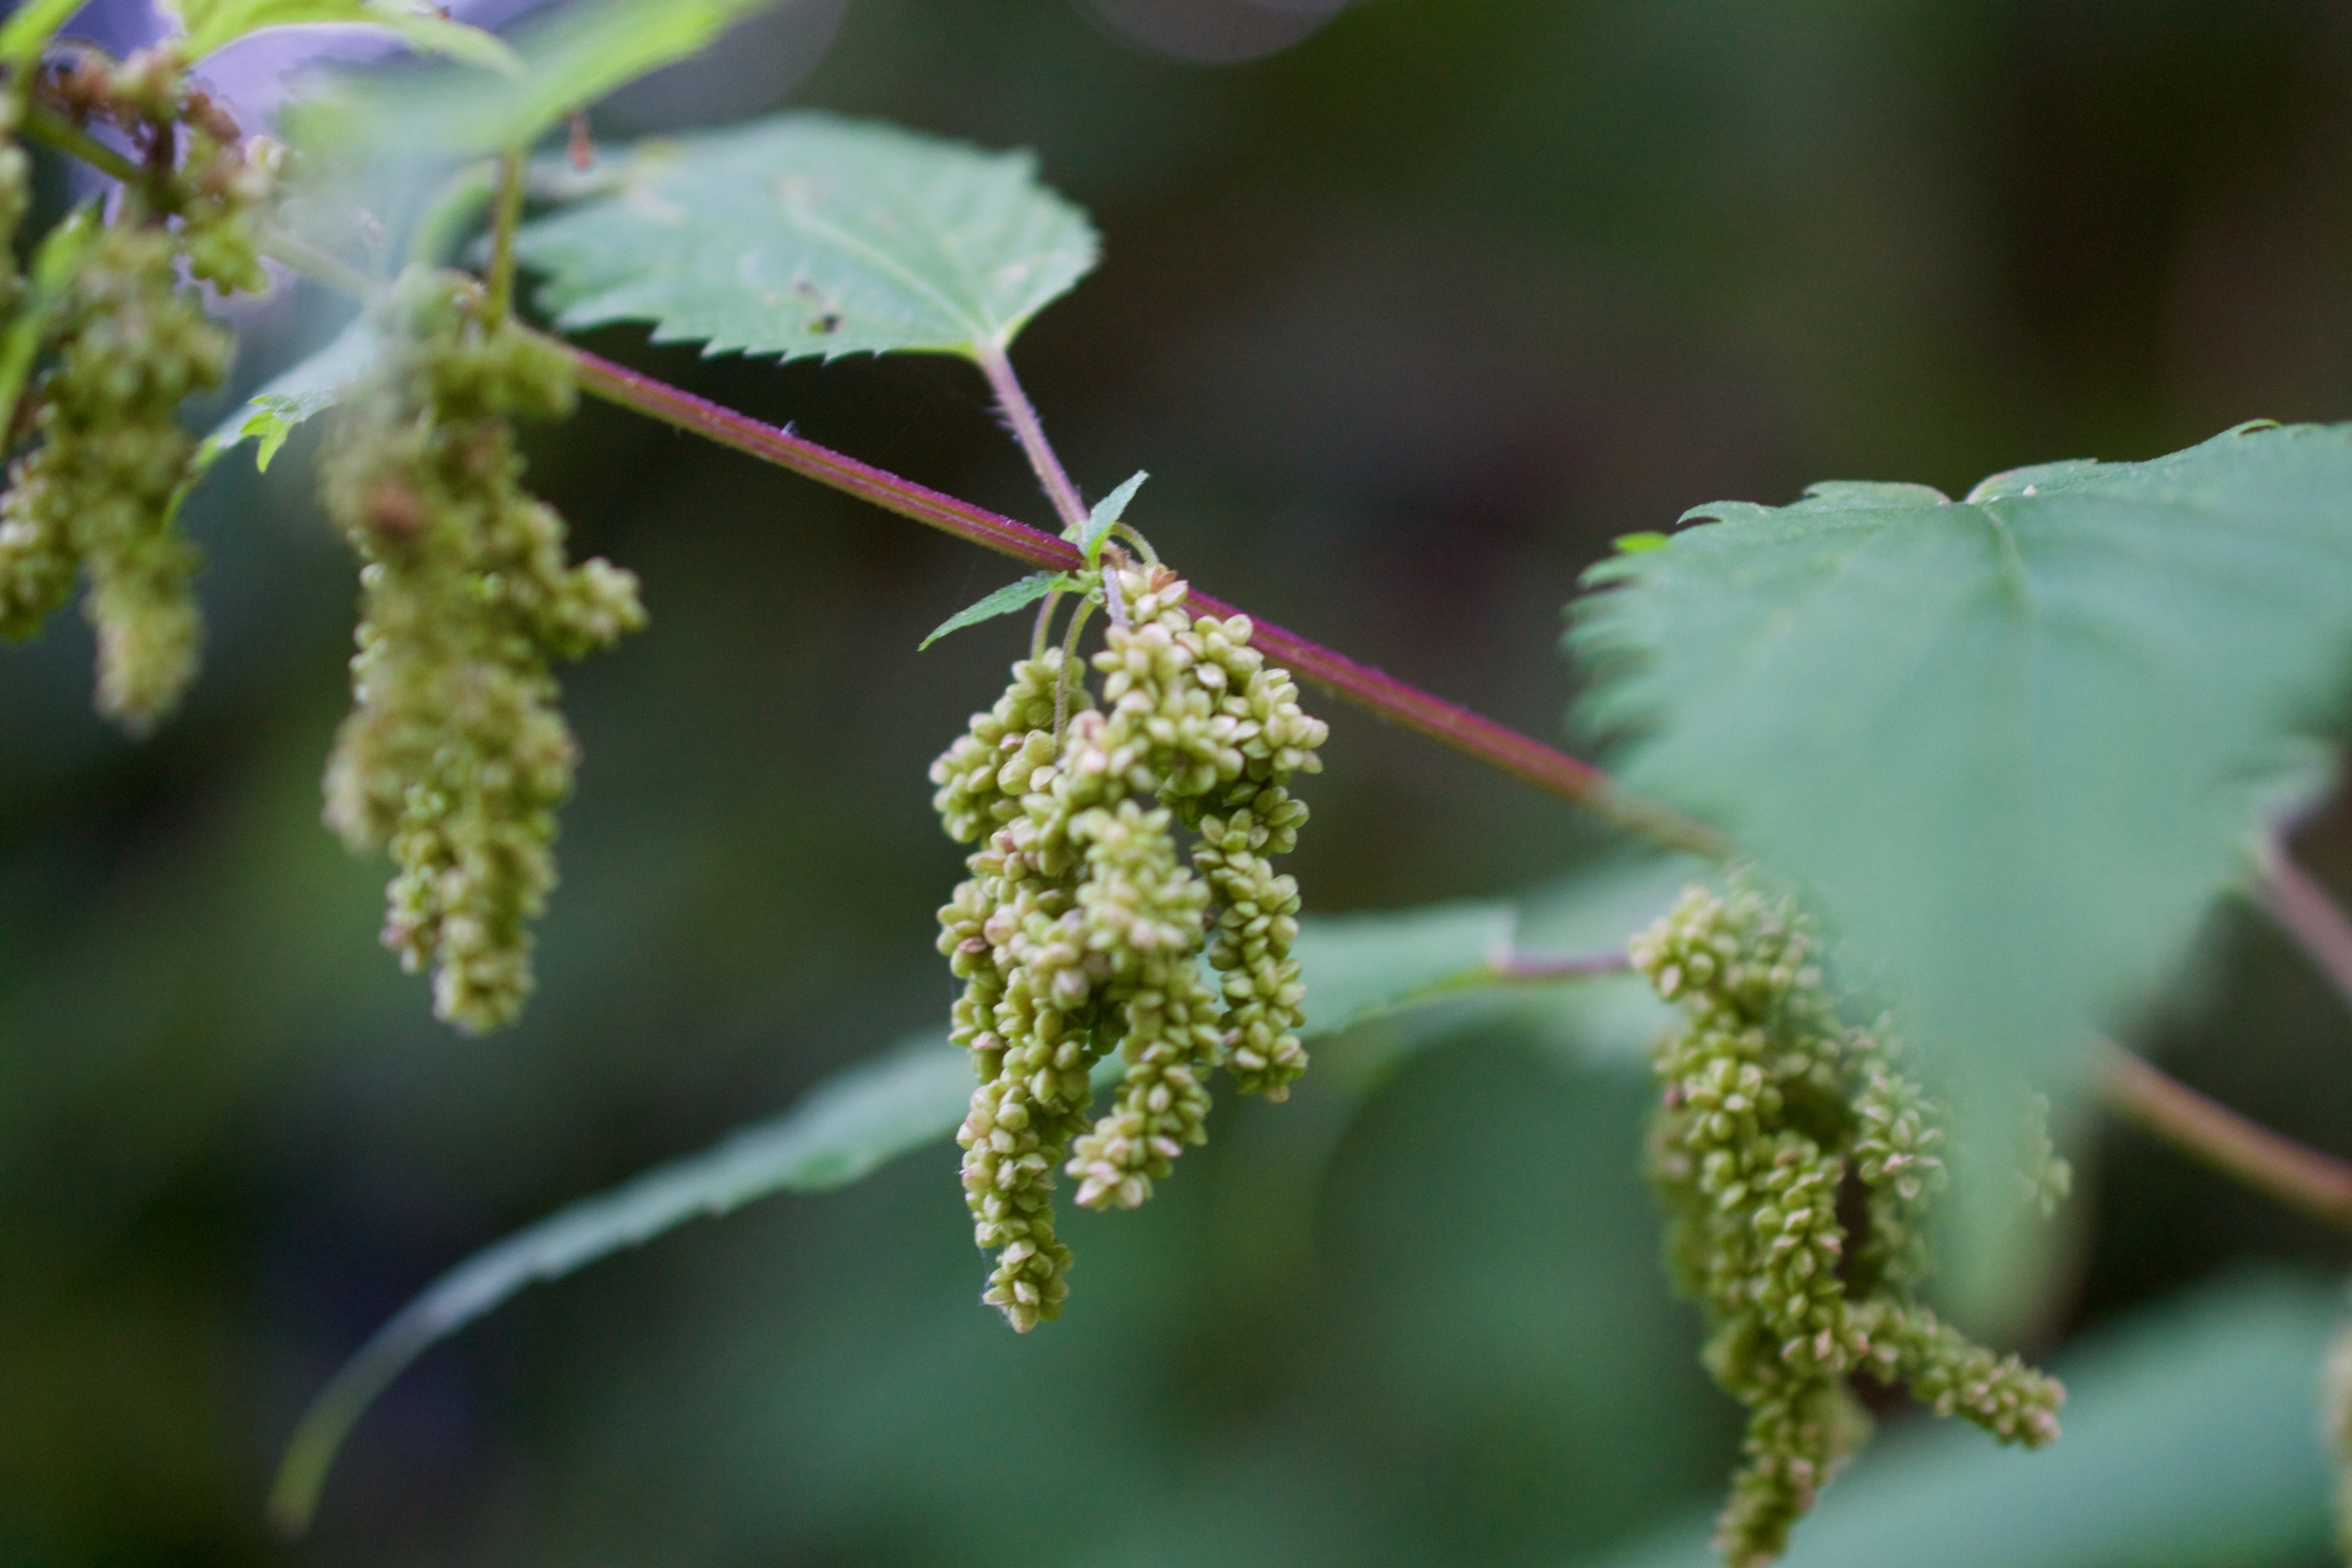 Stinging Nettle seeds in clusters develop after the plant has flowered. The seeds have their own properties and uses.